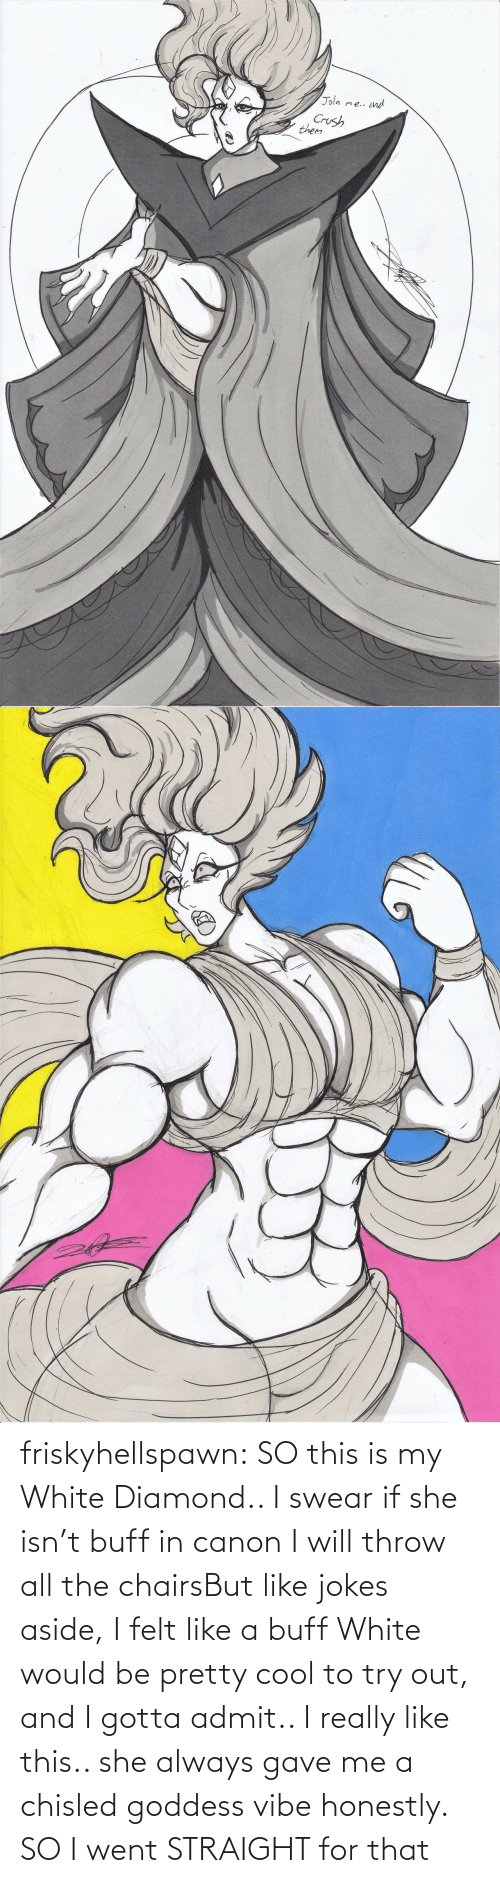 goddess: friskyhellspawn:  SO this is my White Diamond.. I swear if she isn't buff in canon I will throw all the chairsBut like jokes aside, I felt like a buff White would be pretty cool to try out, and I gotta admit.. I really like this.. she always gave me a chisled goddess vibe honestly. SO I went STRAIGHT for that